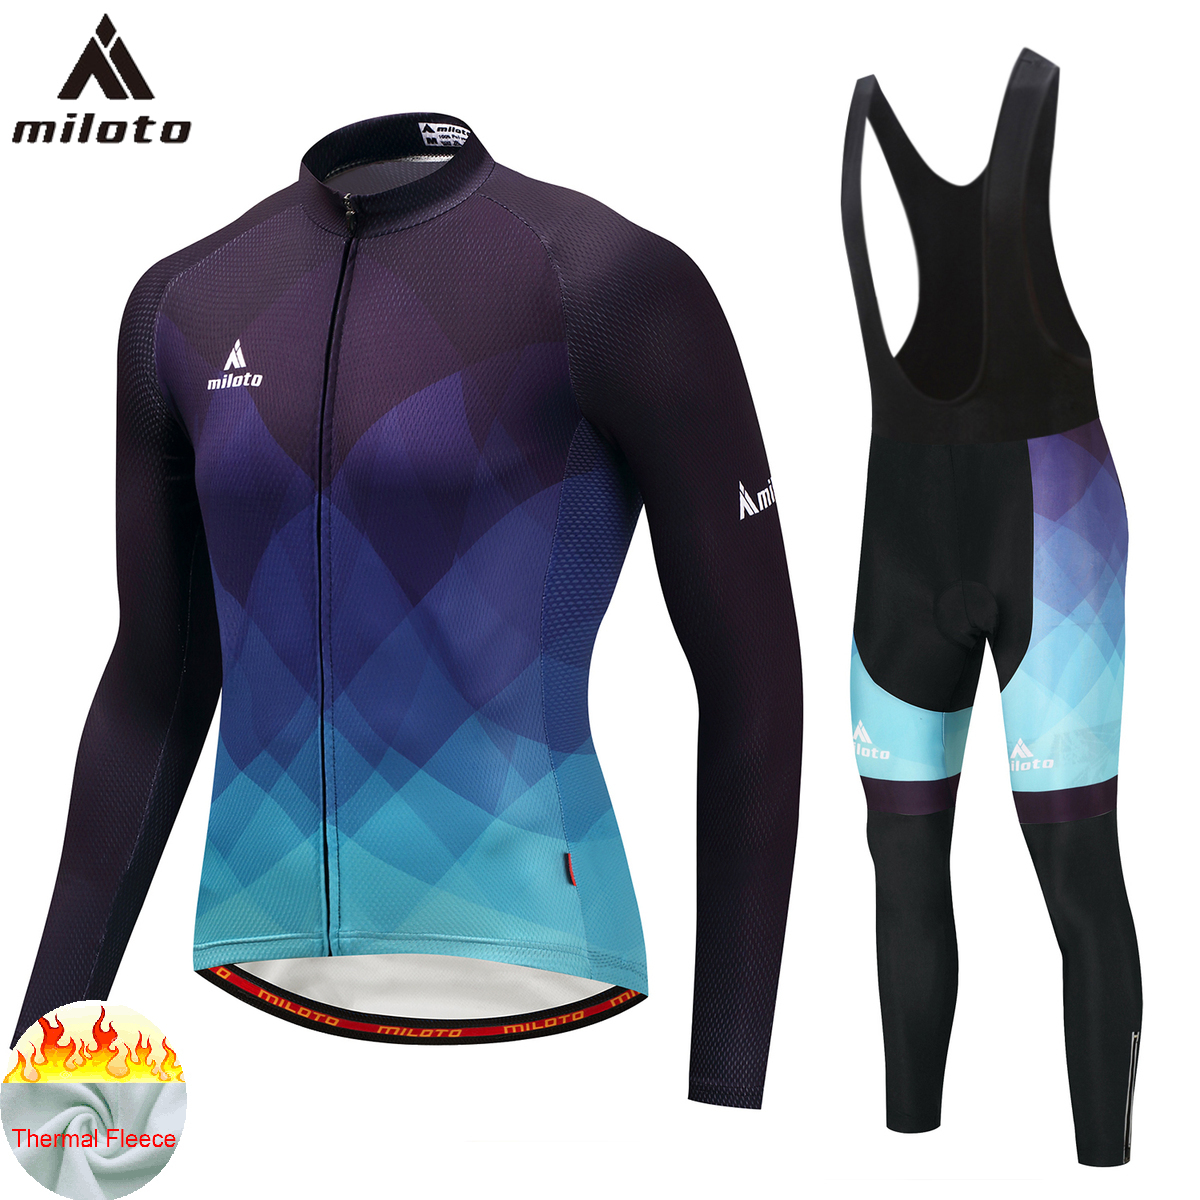 MILOTO Thermal Fleece Bicycle Uniform Cycling Man Trousers Downhill MTB Uniform Jacket Sports Suit Cycling Clothes